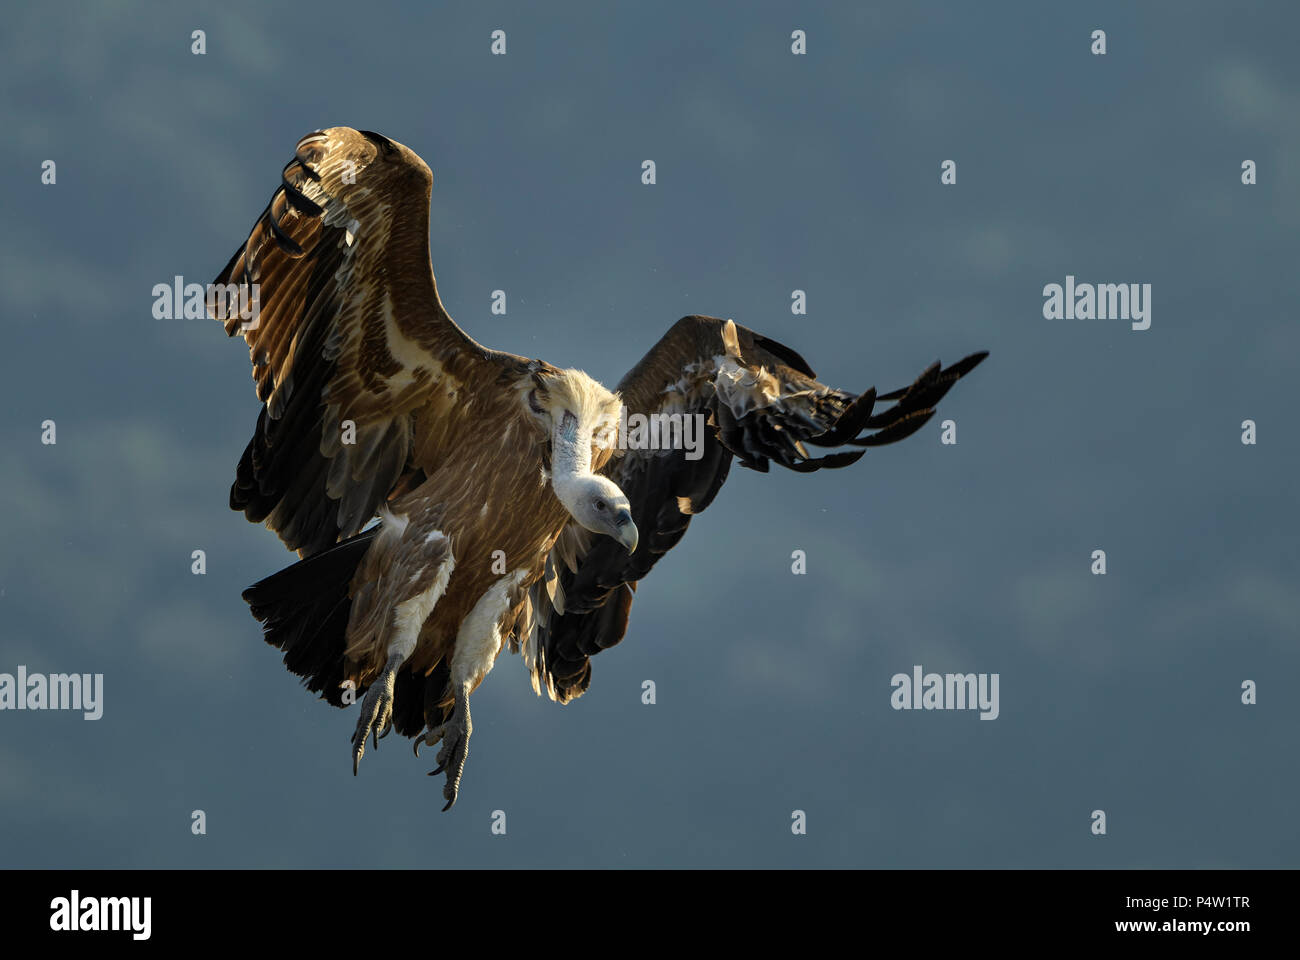 Griffon Vulture - Gyps fulvus, large brown white headed vulture from Old World and Africa. Stock Photo